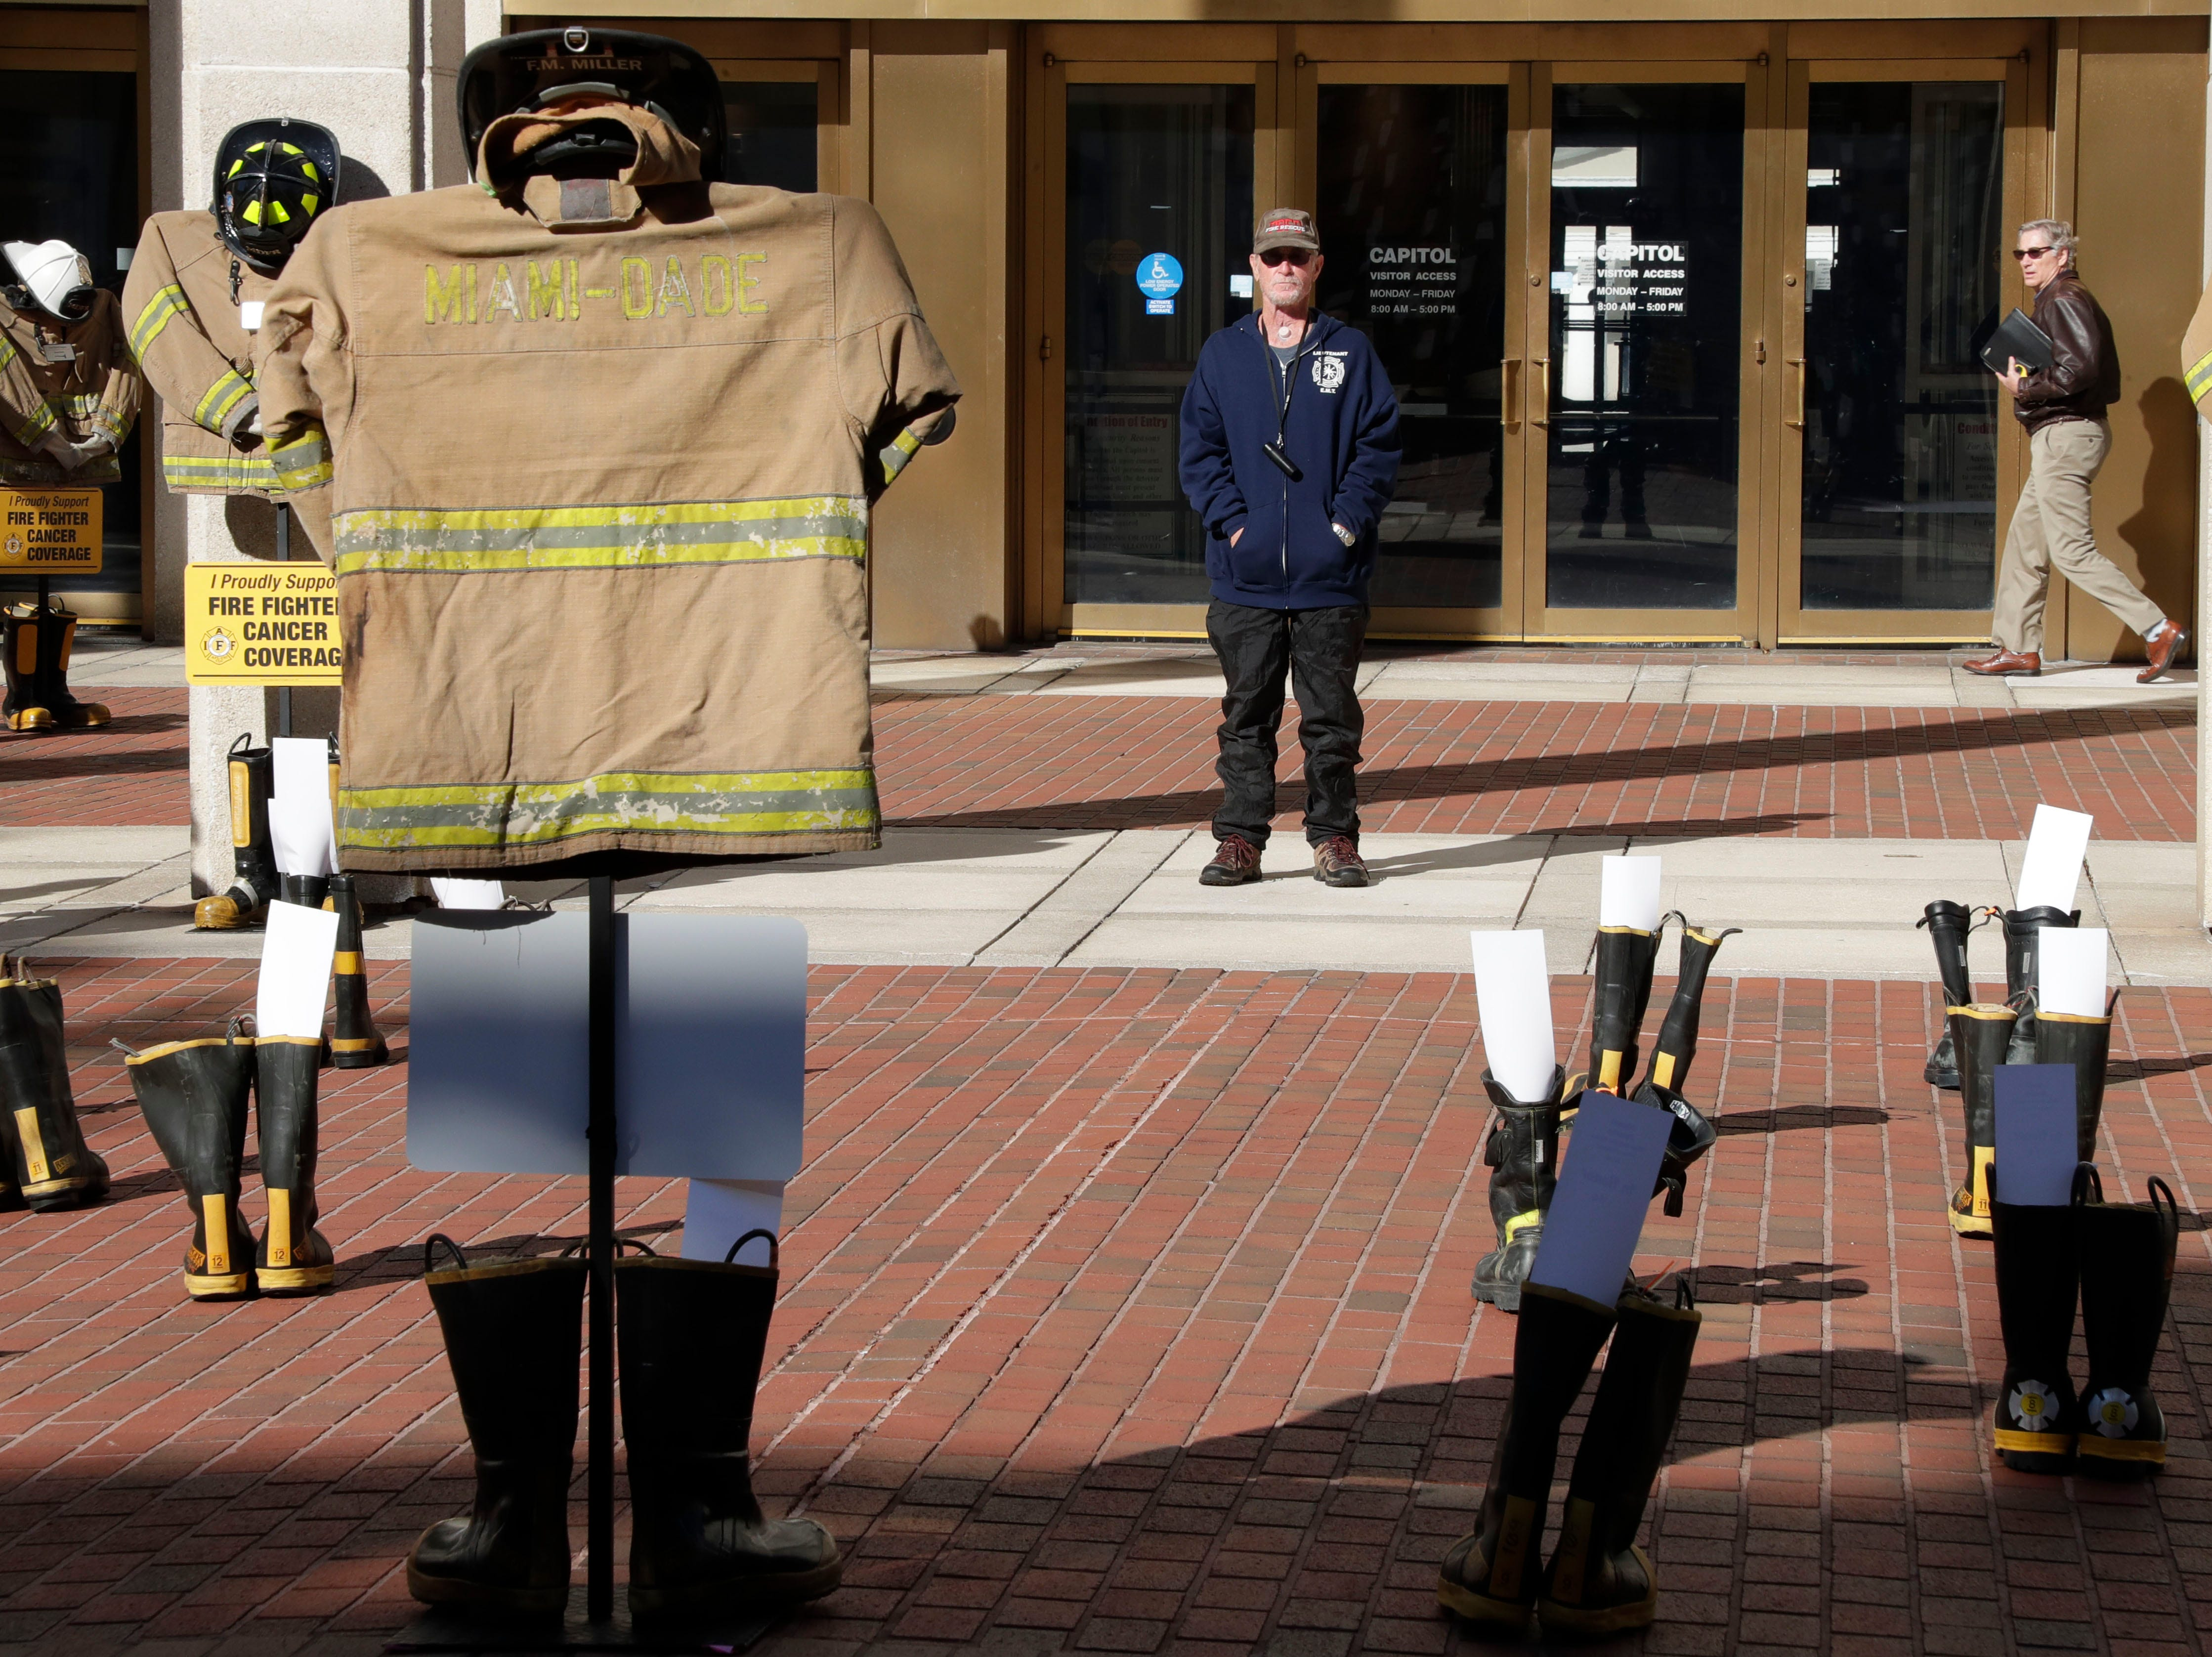 Jay Post, a former firefighter who is now battling throat cancer, takes in the final display created that morning. Firefighters and their families from around the state create a display at the Capitol of 500 pairs of boots in honor of firefighters who lost their battle or are battling with cancer caused from smoke inhalation and carcinogens Thursday, March 7, 2019. The state of Florida is one of five states in the country that does not have a bill acknowledging cancer is a job-related illness.